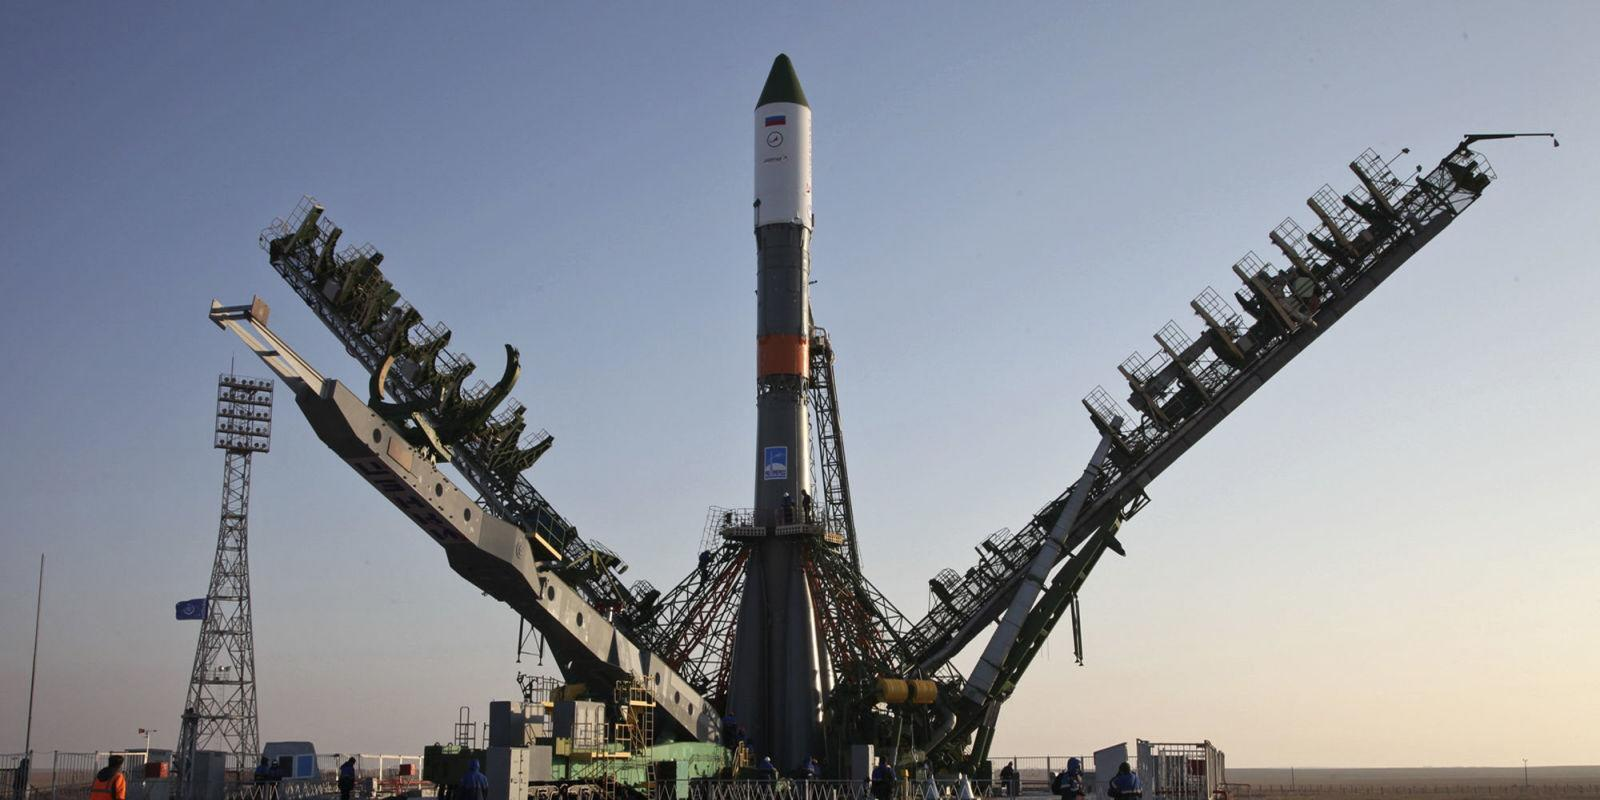 Russian Cargo Spacecraft Burns Up Over Siberia En Route to ISS